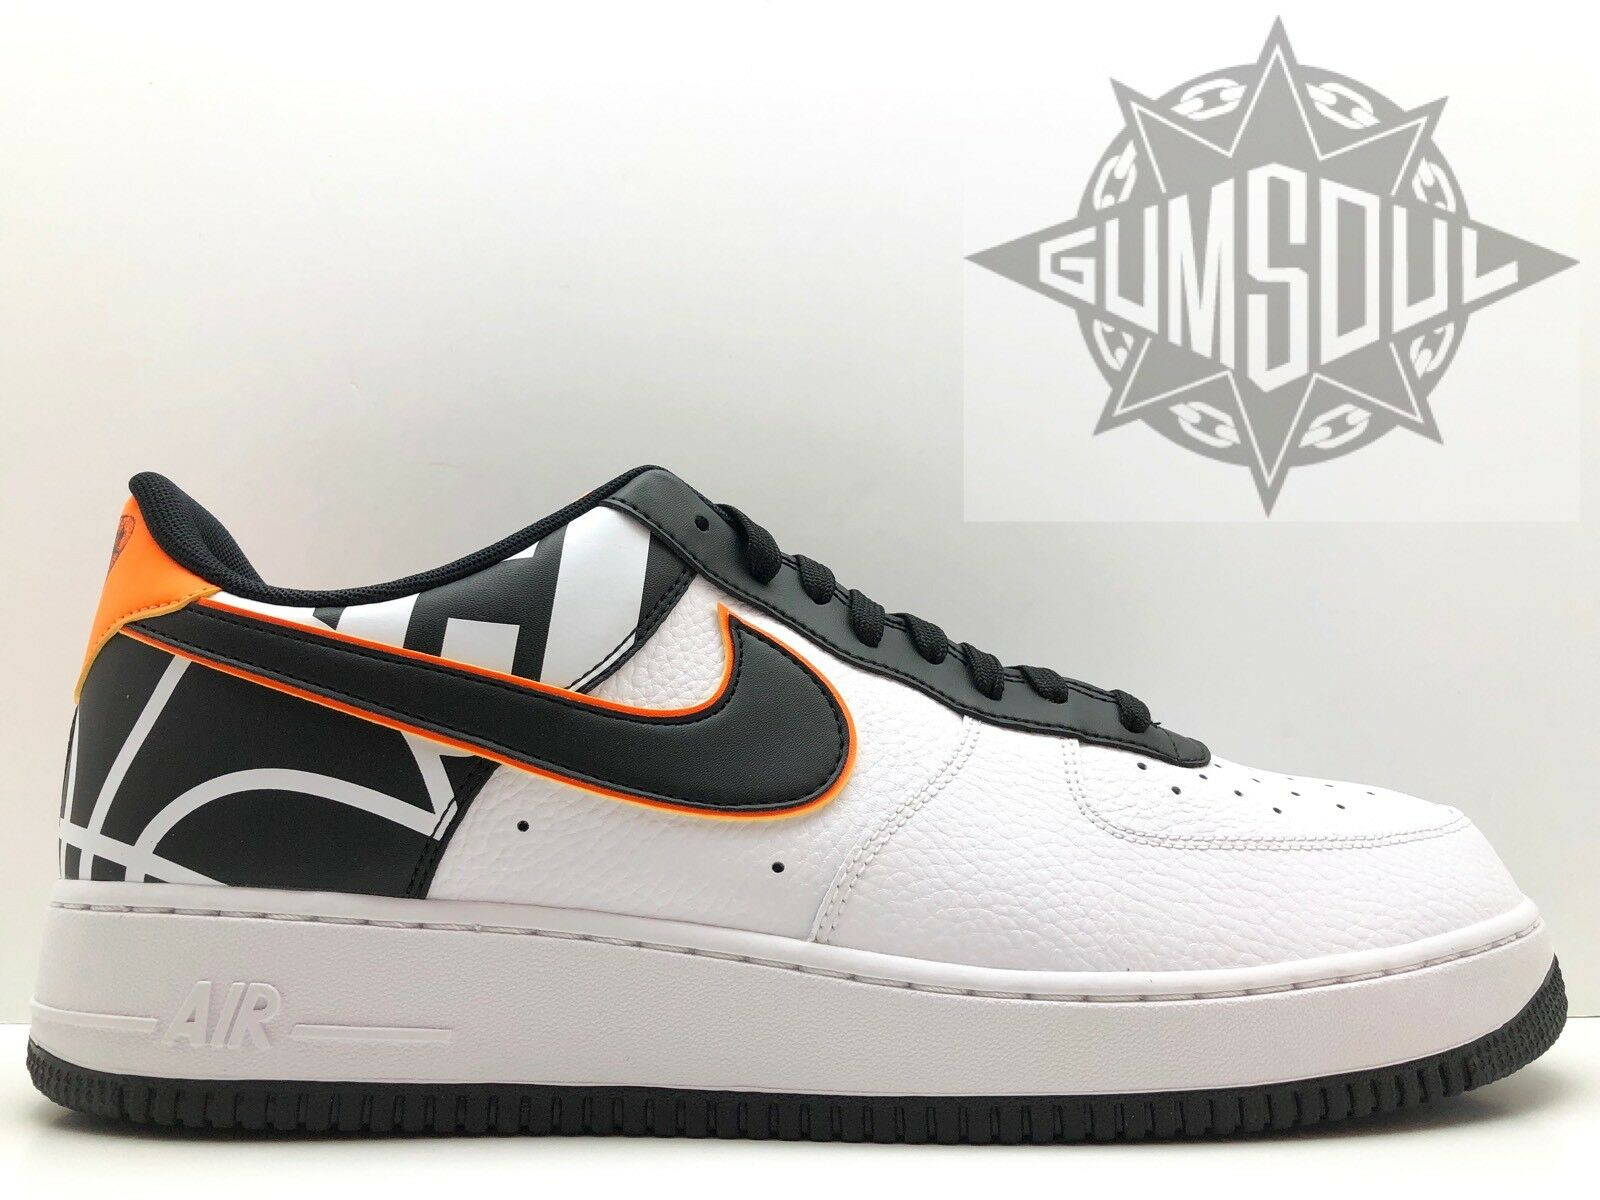 Wild casual shoes NIKE AIR FORCE 1 '07 LV8 LOGO PACK WHITE BLACK ORANGE 823511 104 Price reduction